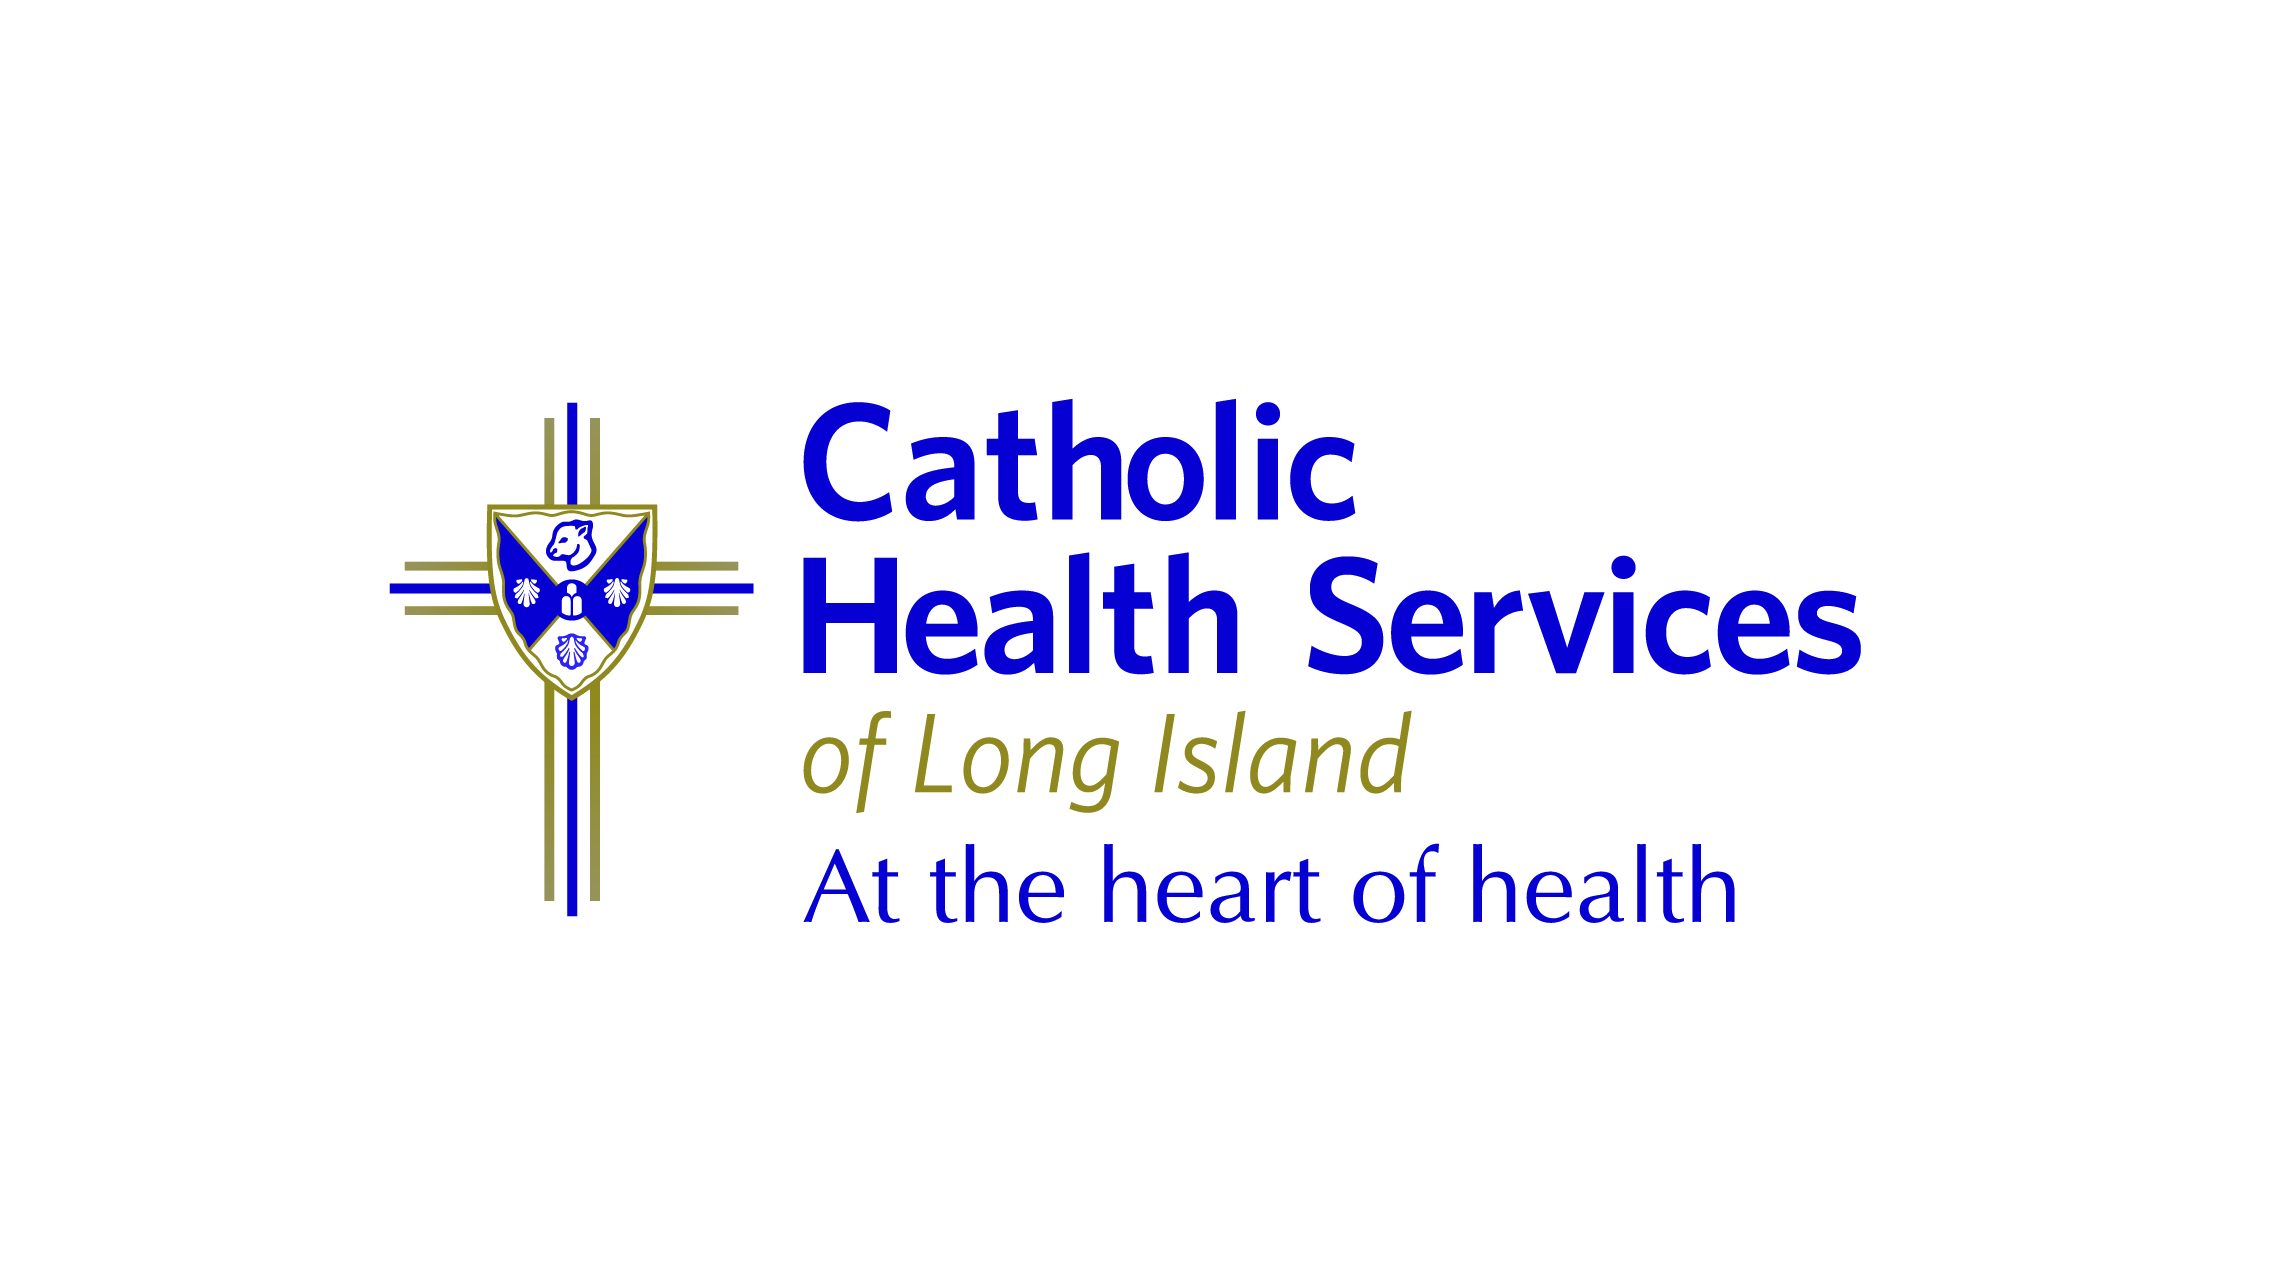 Security Supervisor Job At Catholic Health Services Of Long Island